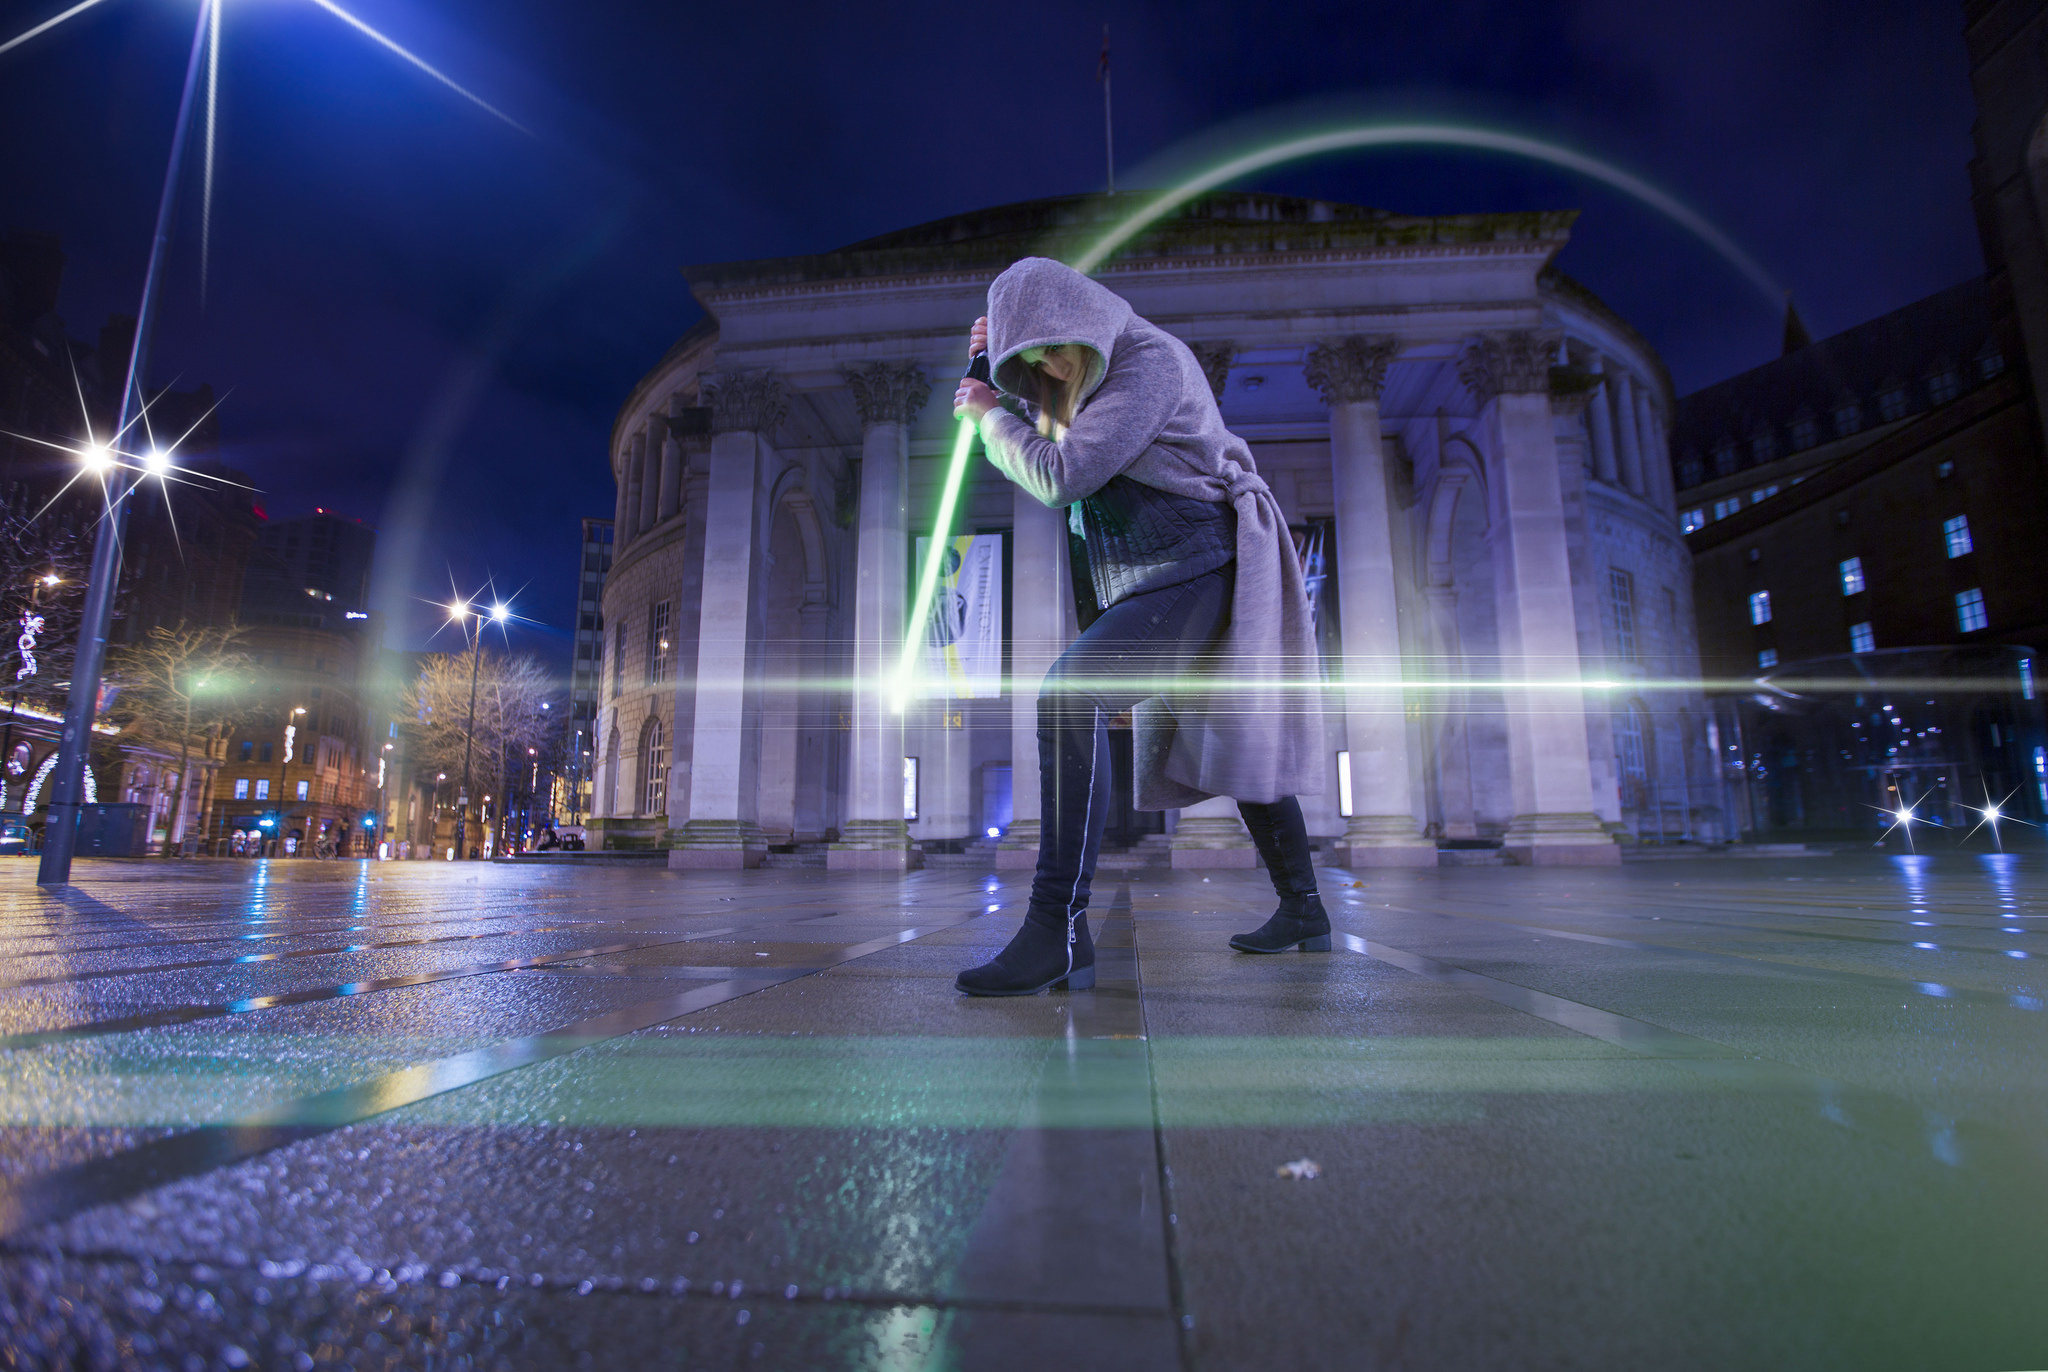 Disney commissioned Star Wars fan and photographer Matt Scutt to create a series of stunning light trail pictures using the famous Jedi weapon, including this image in Manchester